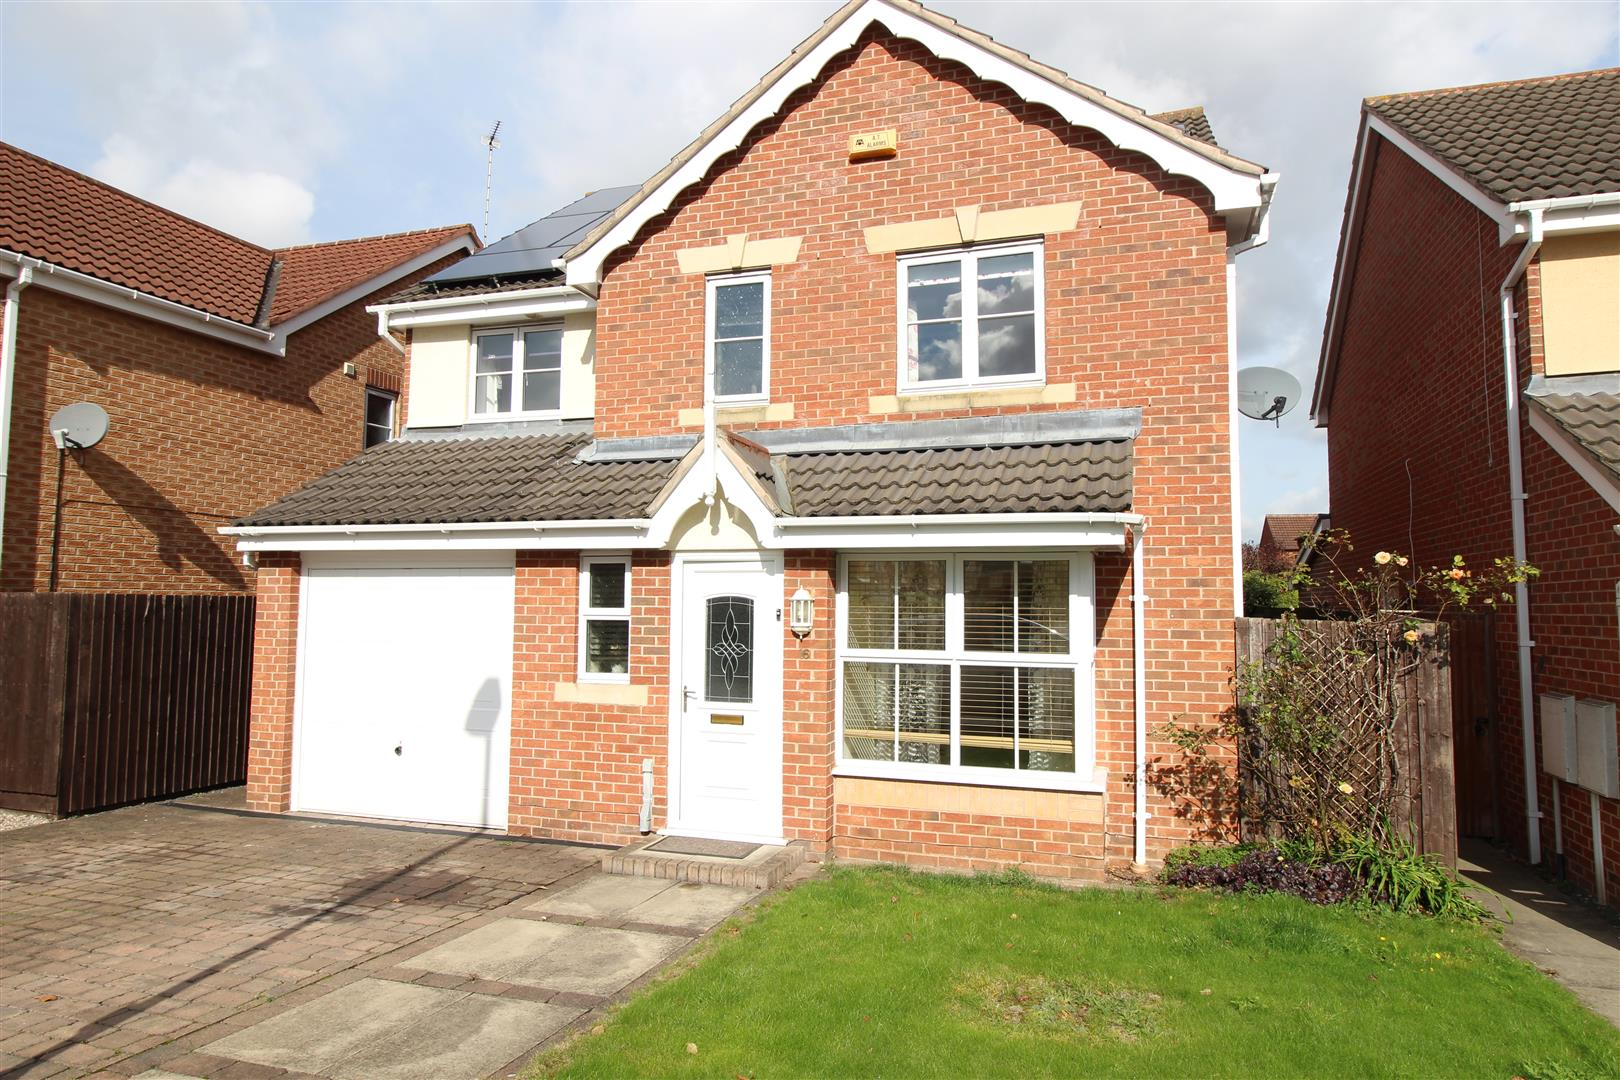 4 Bedrooms Detached House for sale in Topliff Road, Chilwell